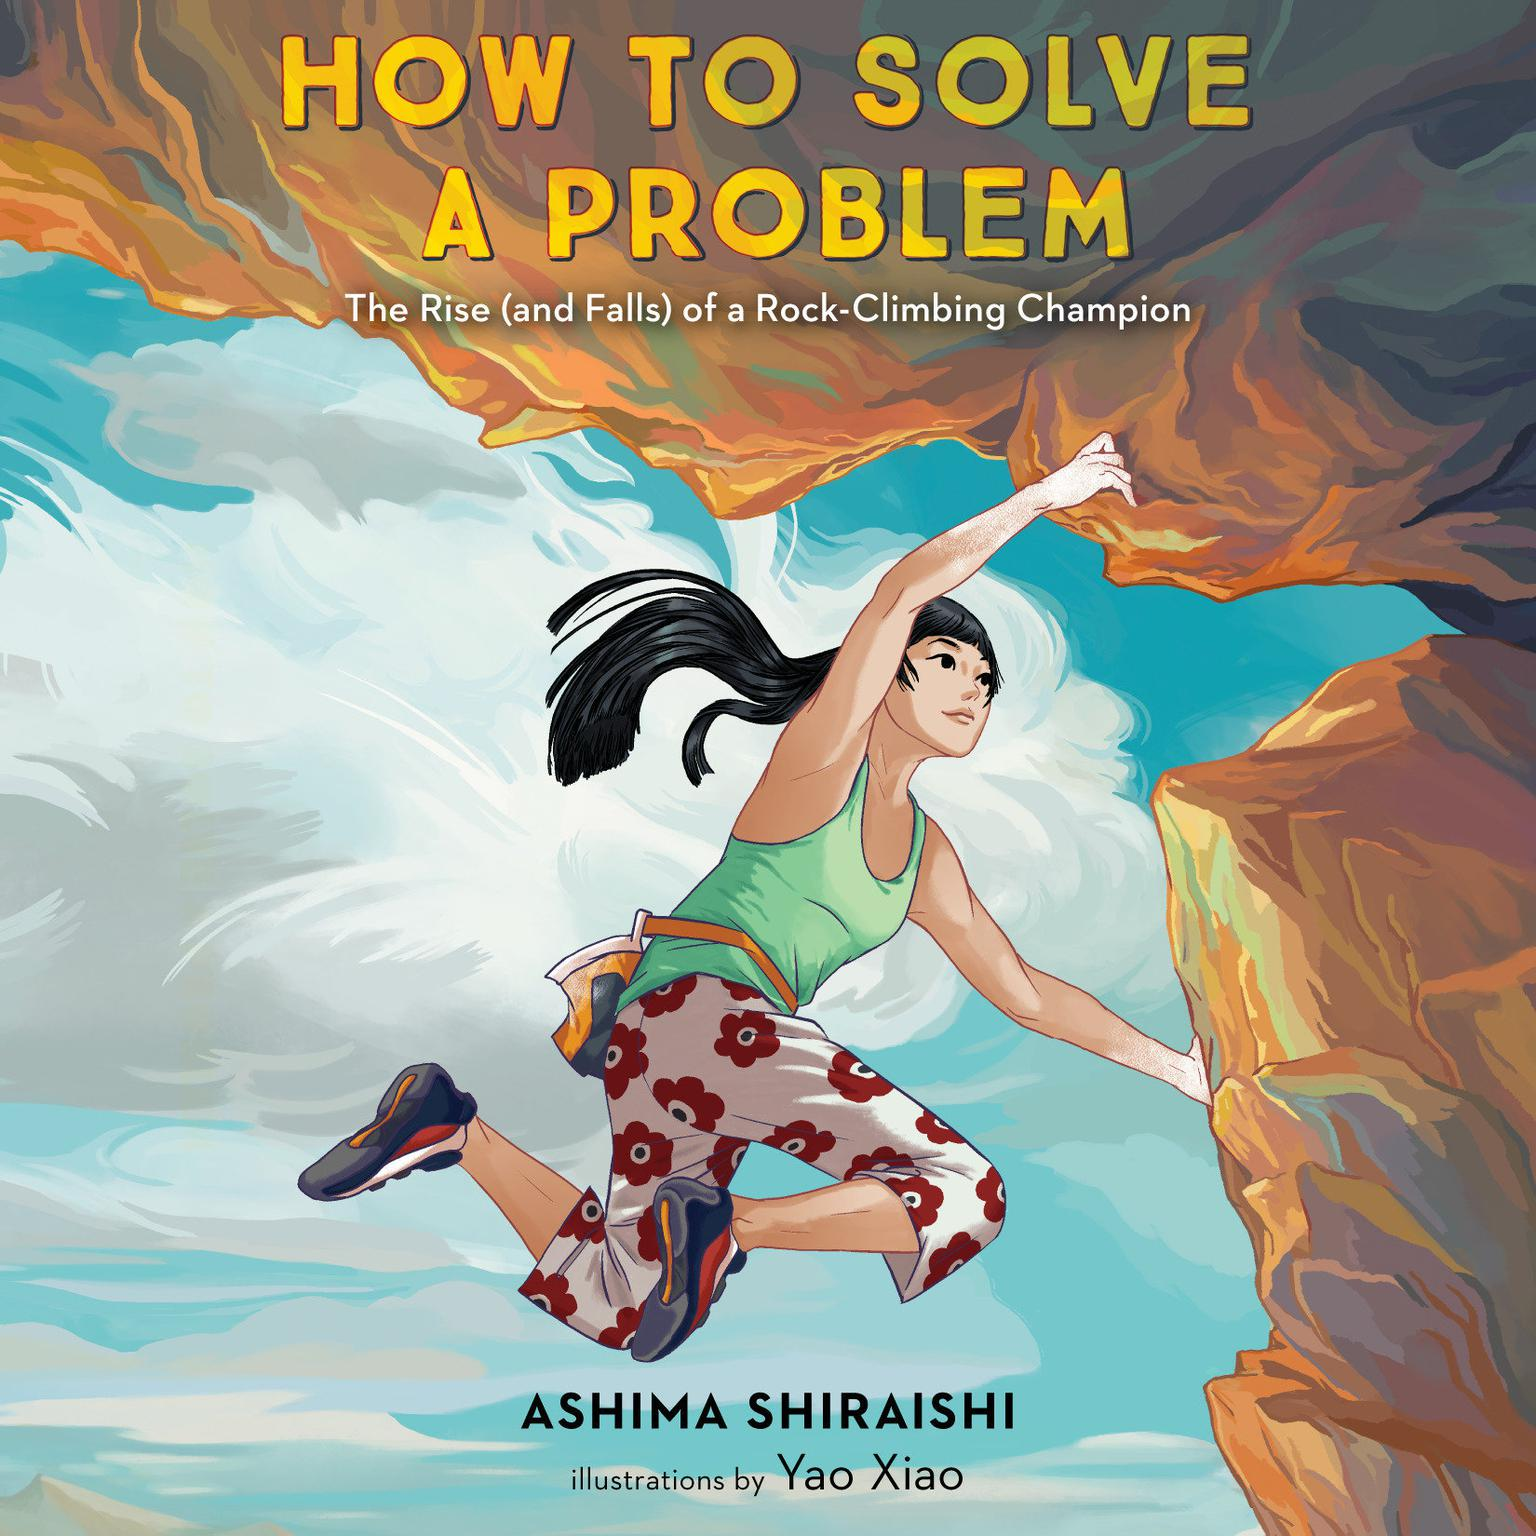 How to Solve a Problem: The Rise (and Falls) of a Rock-Climbing Champion Audiobook, by Ashima Shiraishi